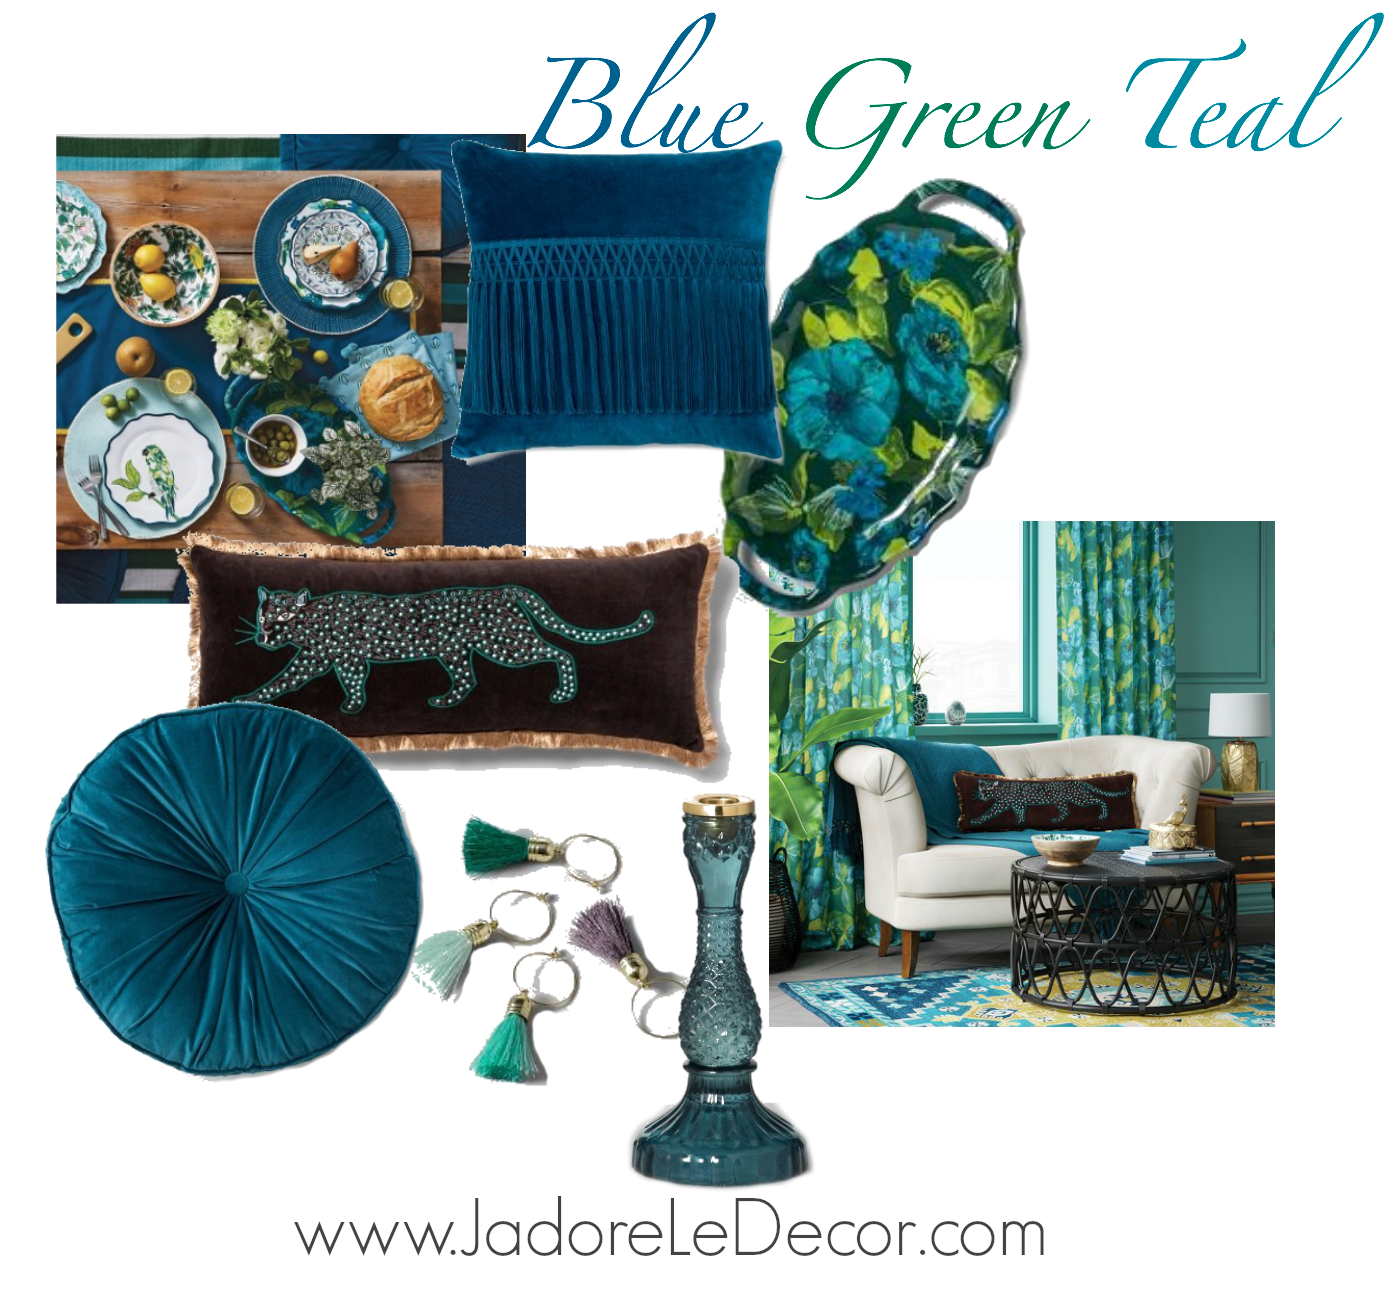 www.jadoreledecor.com | Rich Vibrant Teal: What I'm diggin' right now. Follow me as I discuss my growing obsession with the color Teal.| #Oneroomchallenge #bohemianluxe #colorfulinteriors #secretstylingclub #globalbohemianchic #stopandstaredecor #tealfashion #tealinteiors #tealcolor